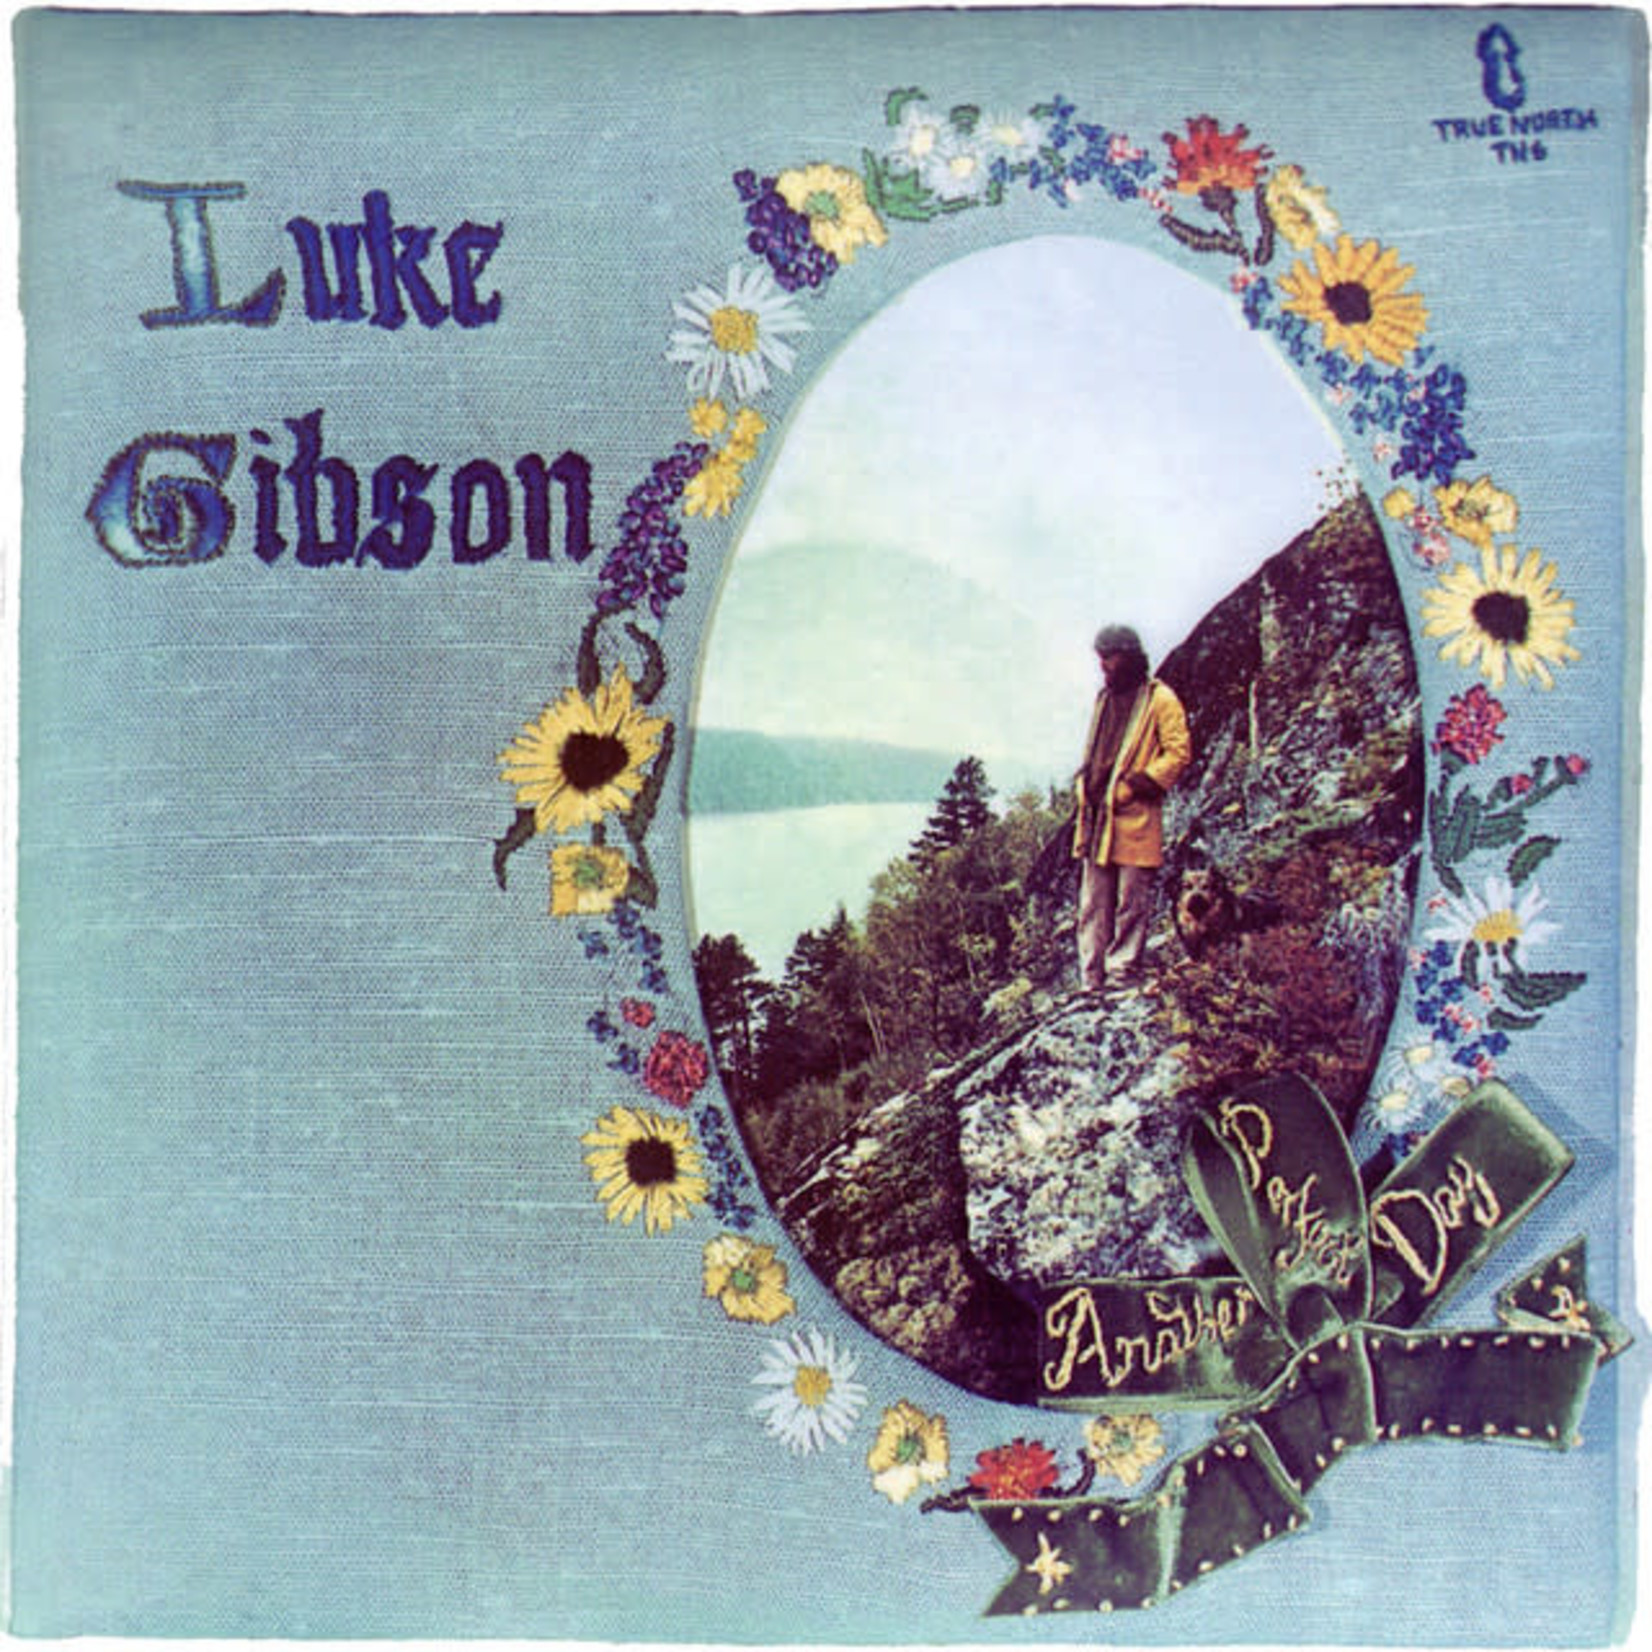 Vinyl Luke Gibson - Another Perfect Day